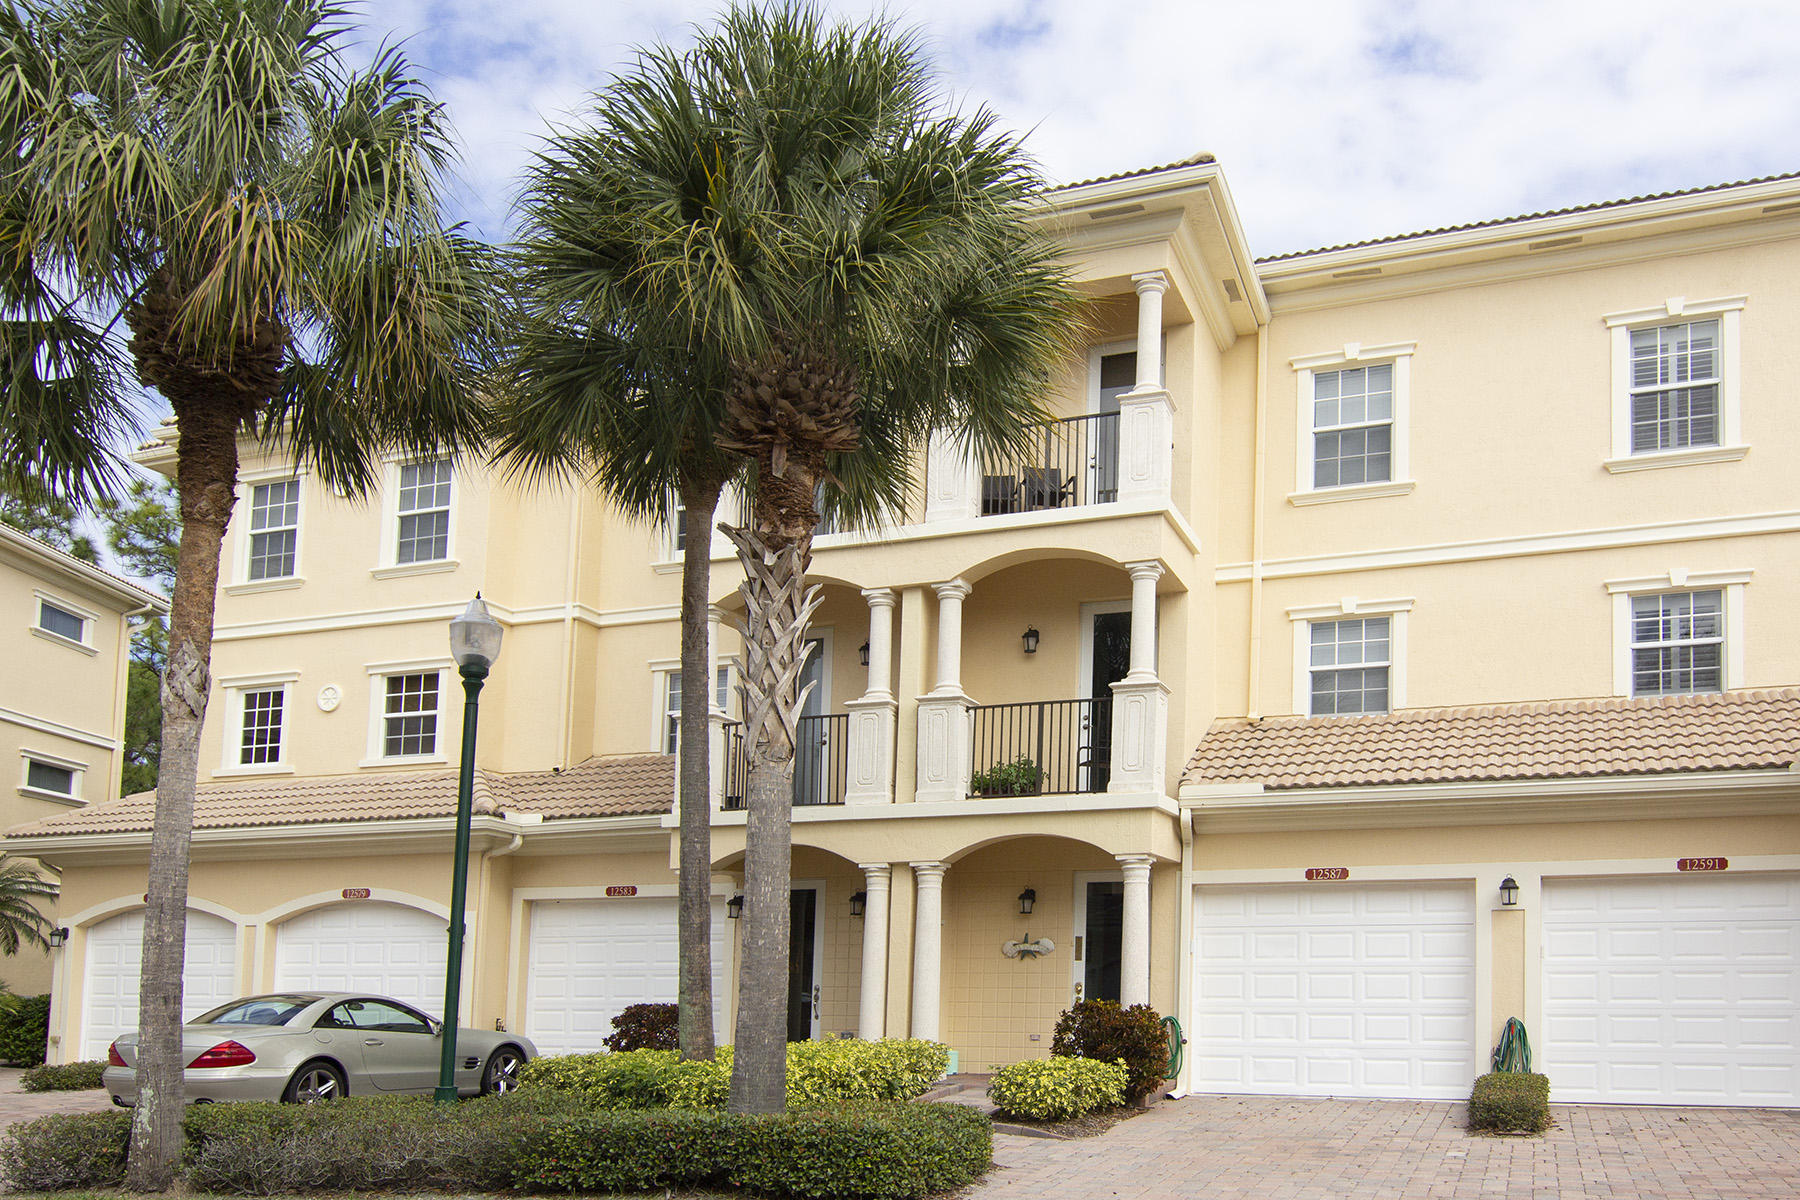 12587 SE Old Cypress Drive, one of homes for sale in Hobe Sound